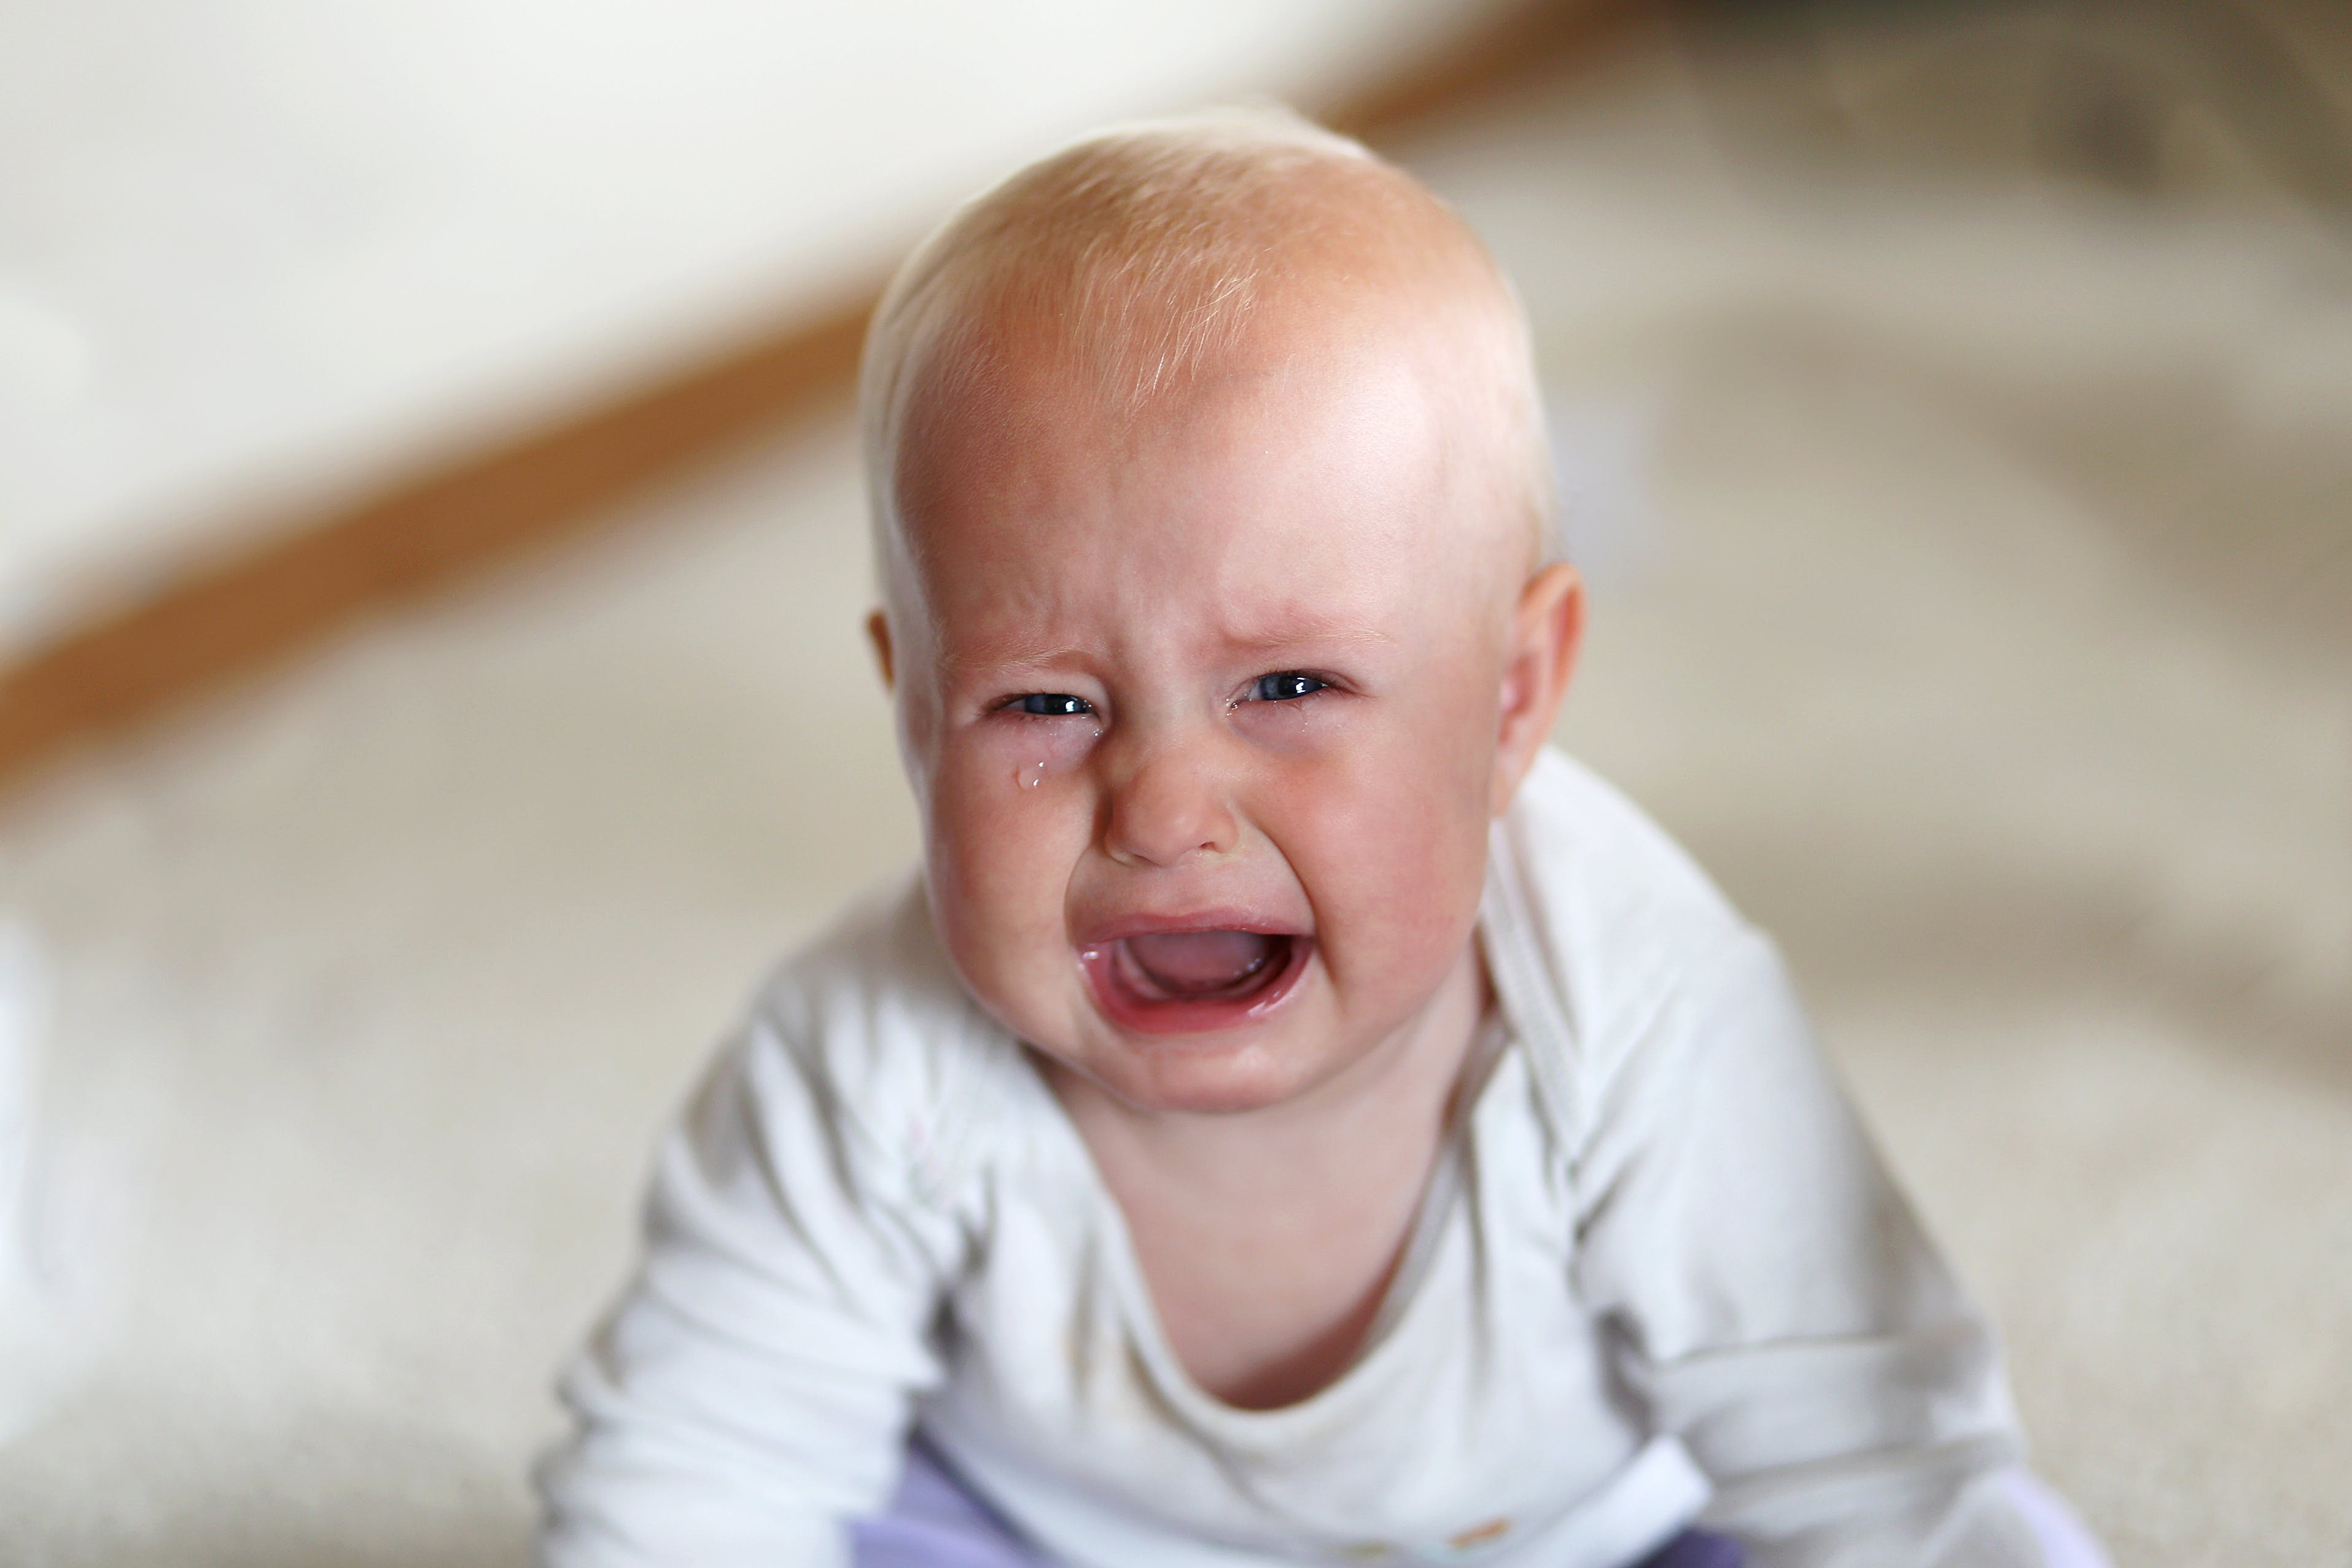 Why is my 6 month old suddenly unhappy all the time? - Winnie